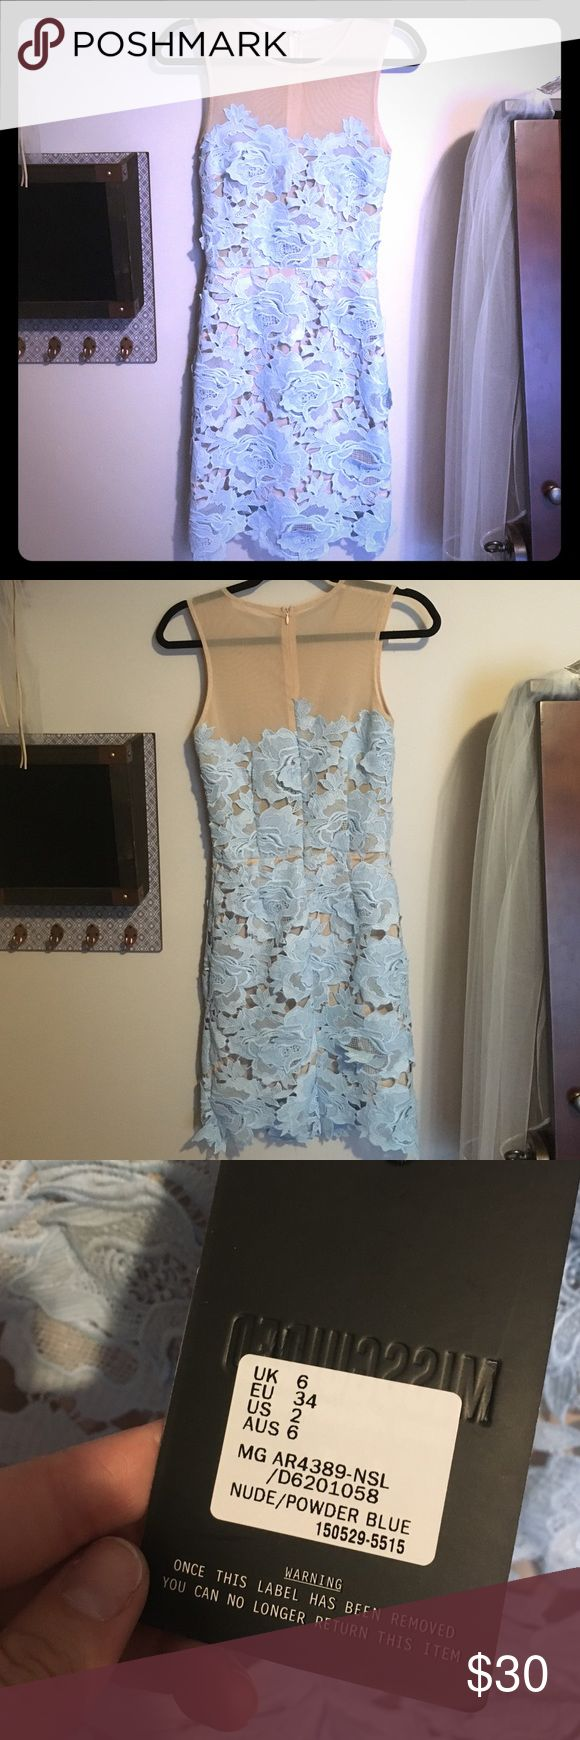 Misguided dress- Tiffany blue Beautiful dress! Perfect for bridal shower, baby shower or wedding! Misguided Dresses